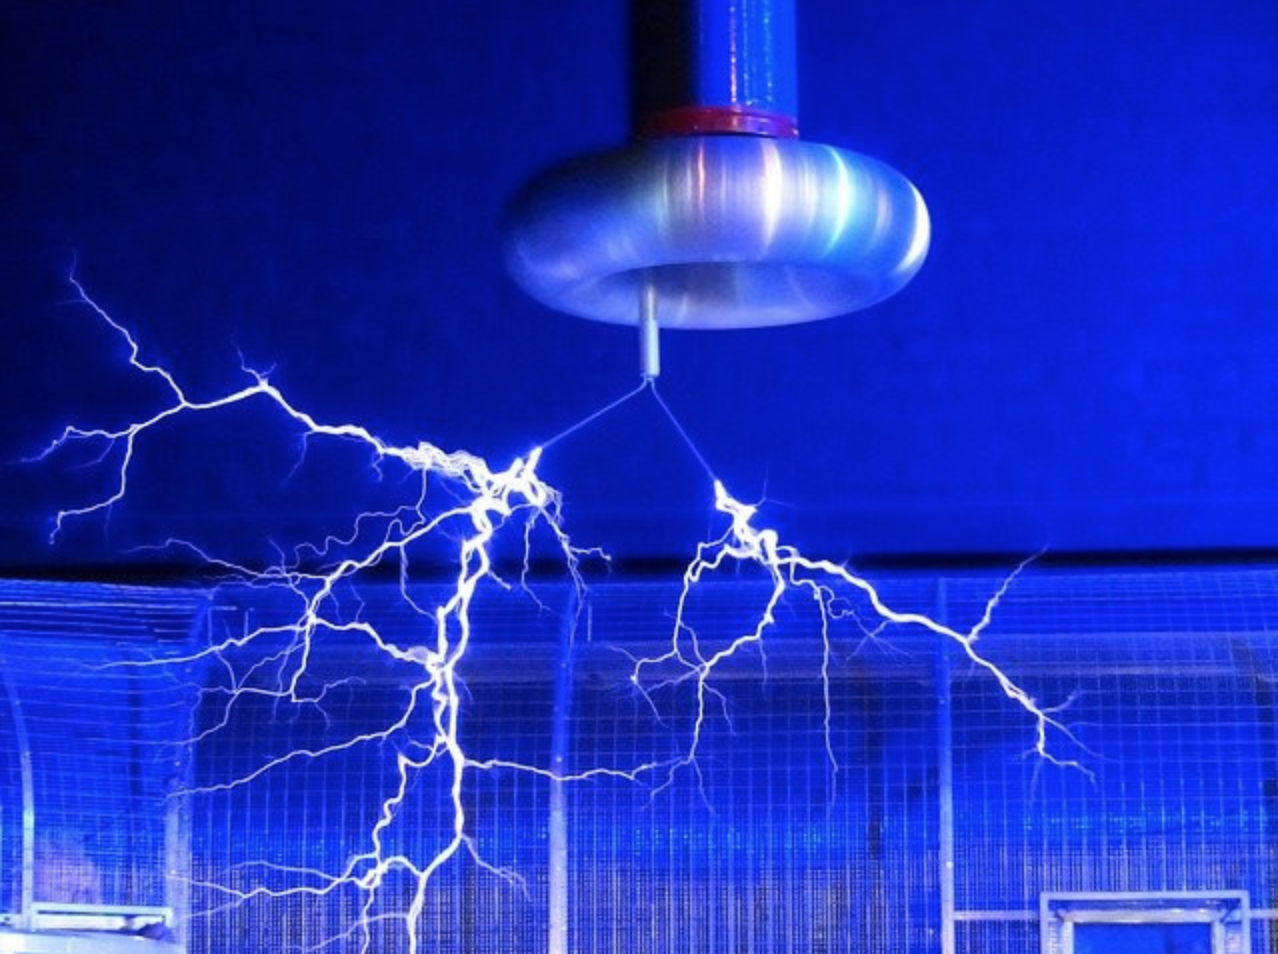 Why Does the US Use 110v and Europe 220v? - Electrical current